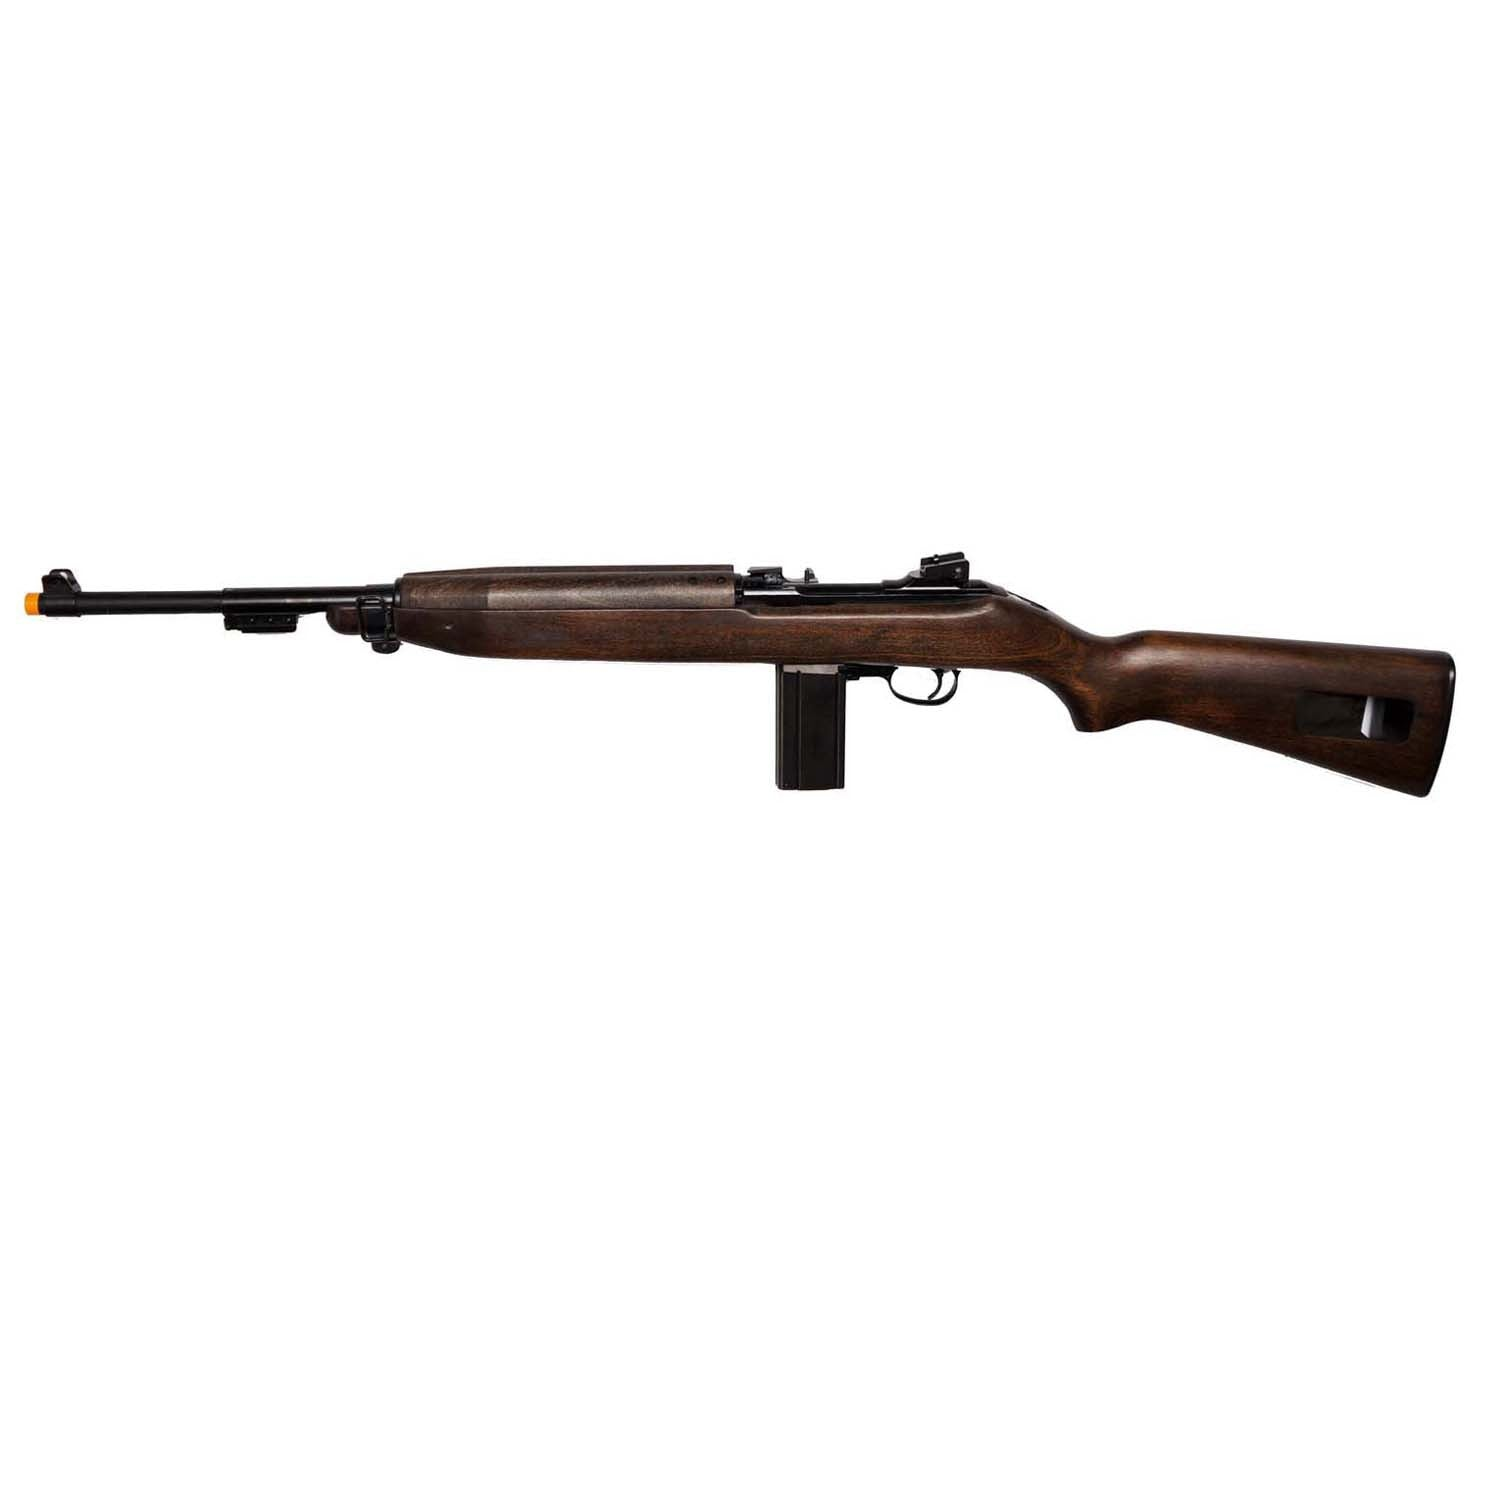 UKARMS M1 Carbine Spring Rifle